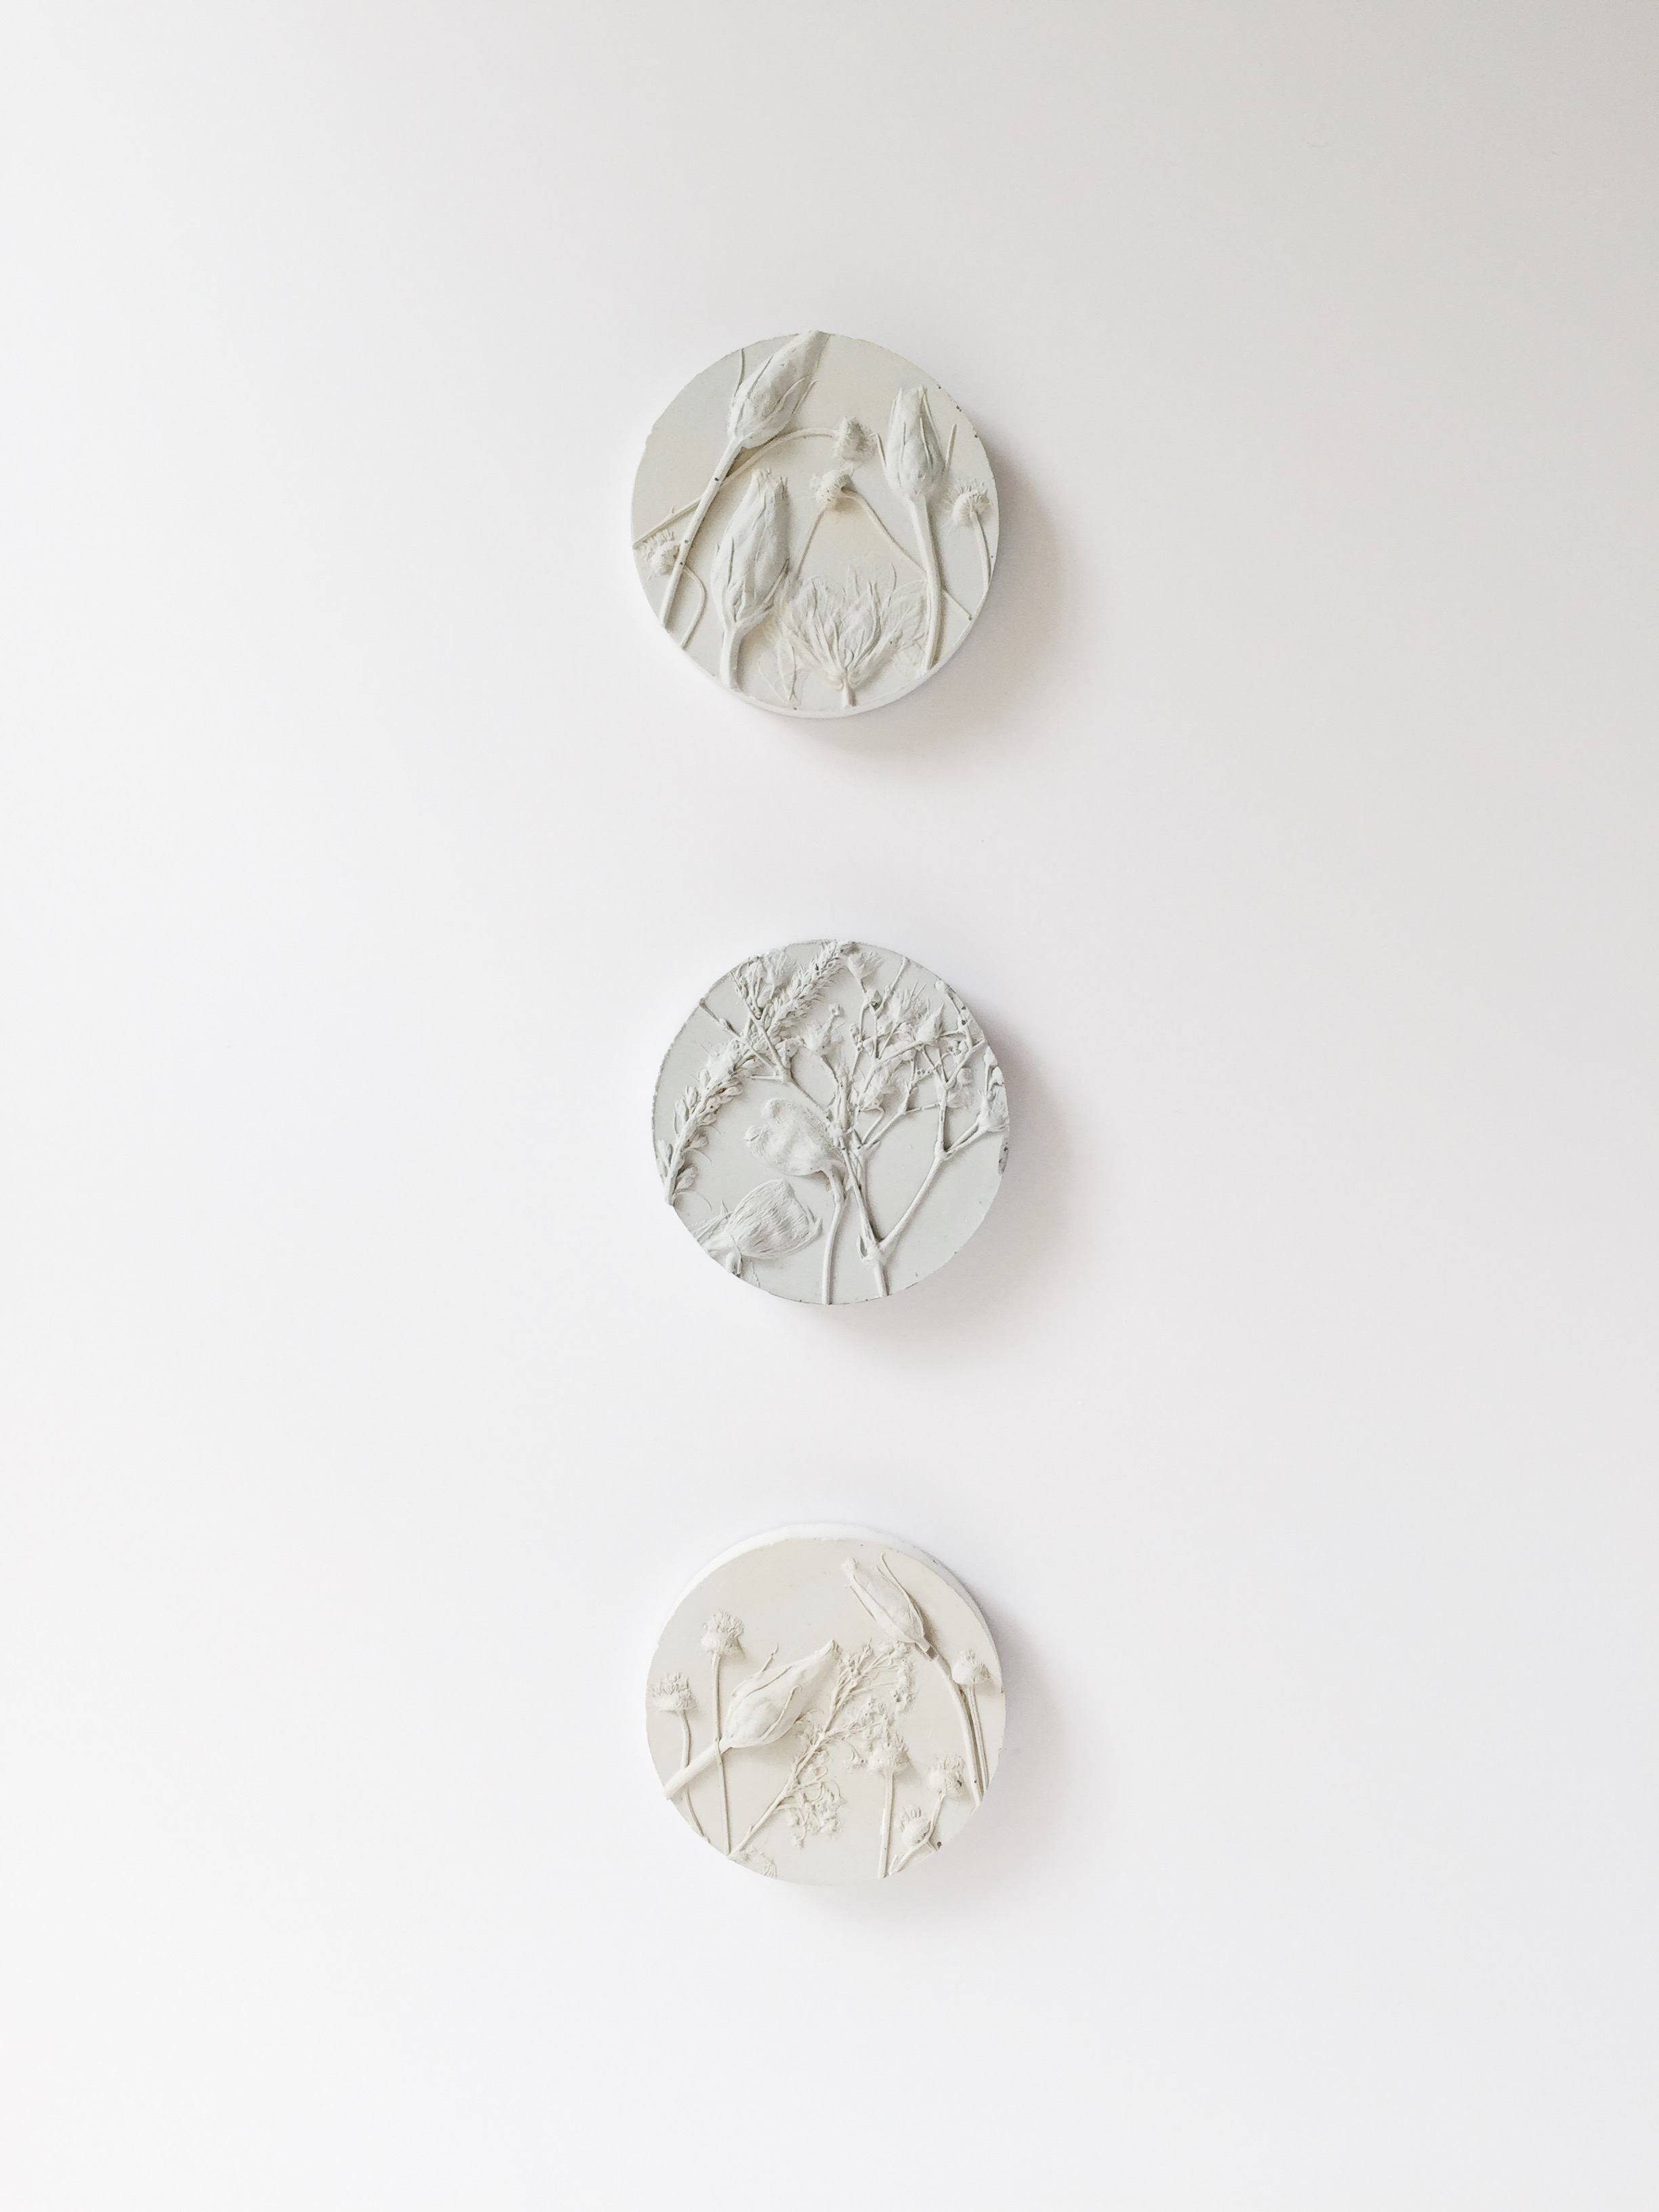 Botanical Sculptures - Raychelle Collection